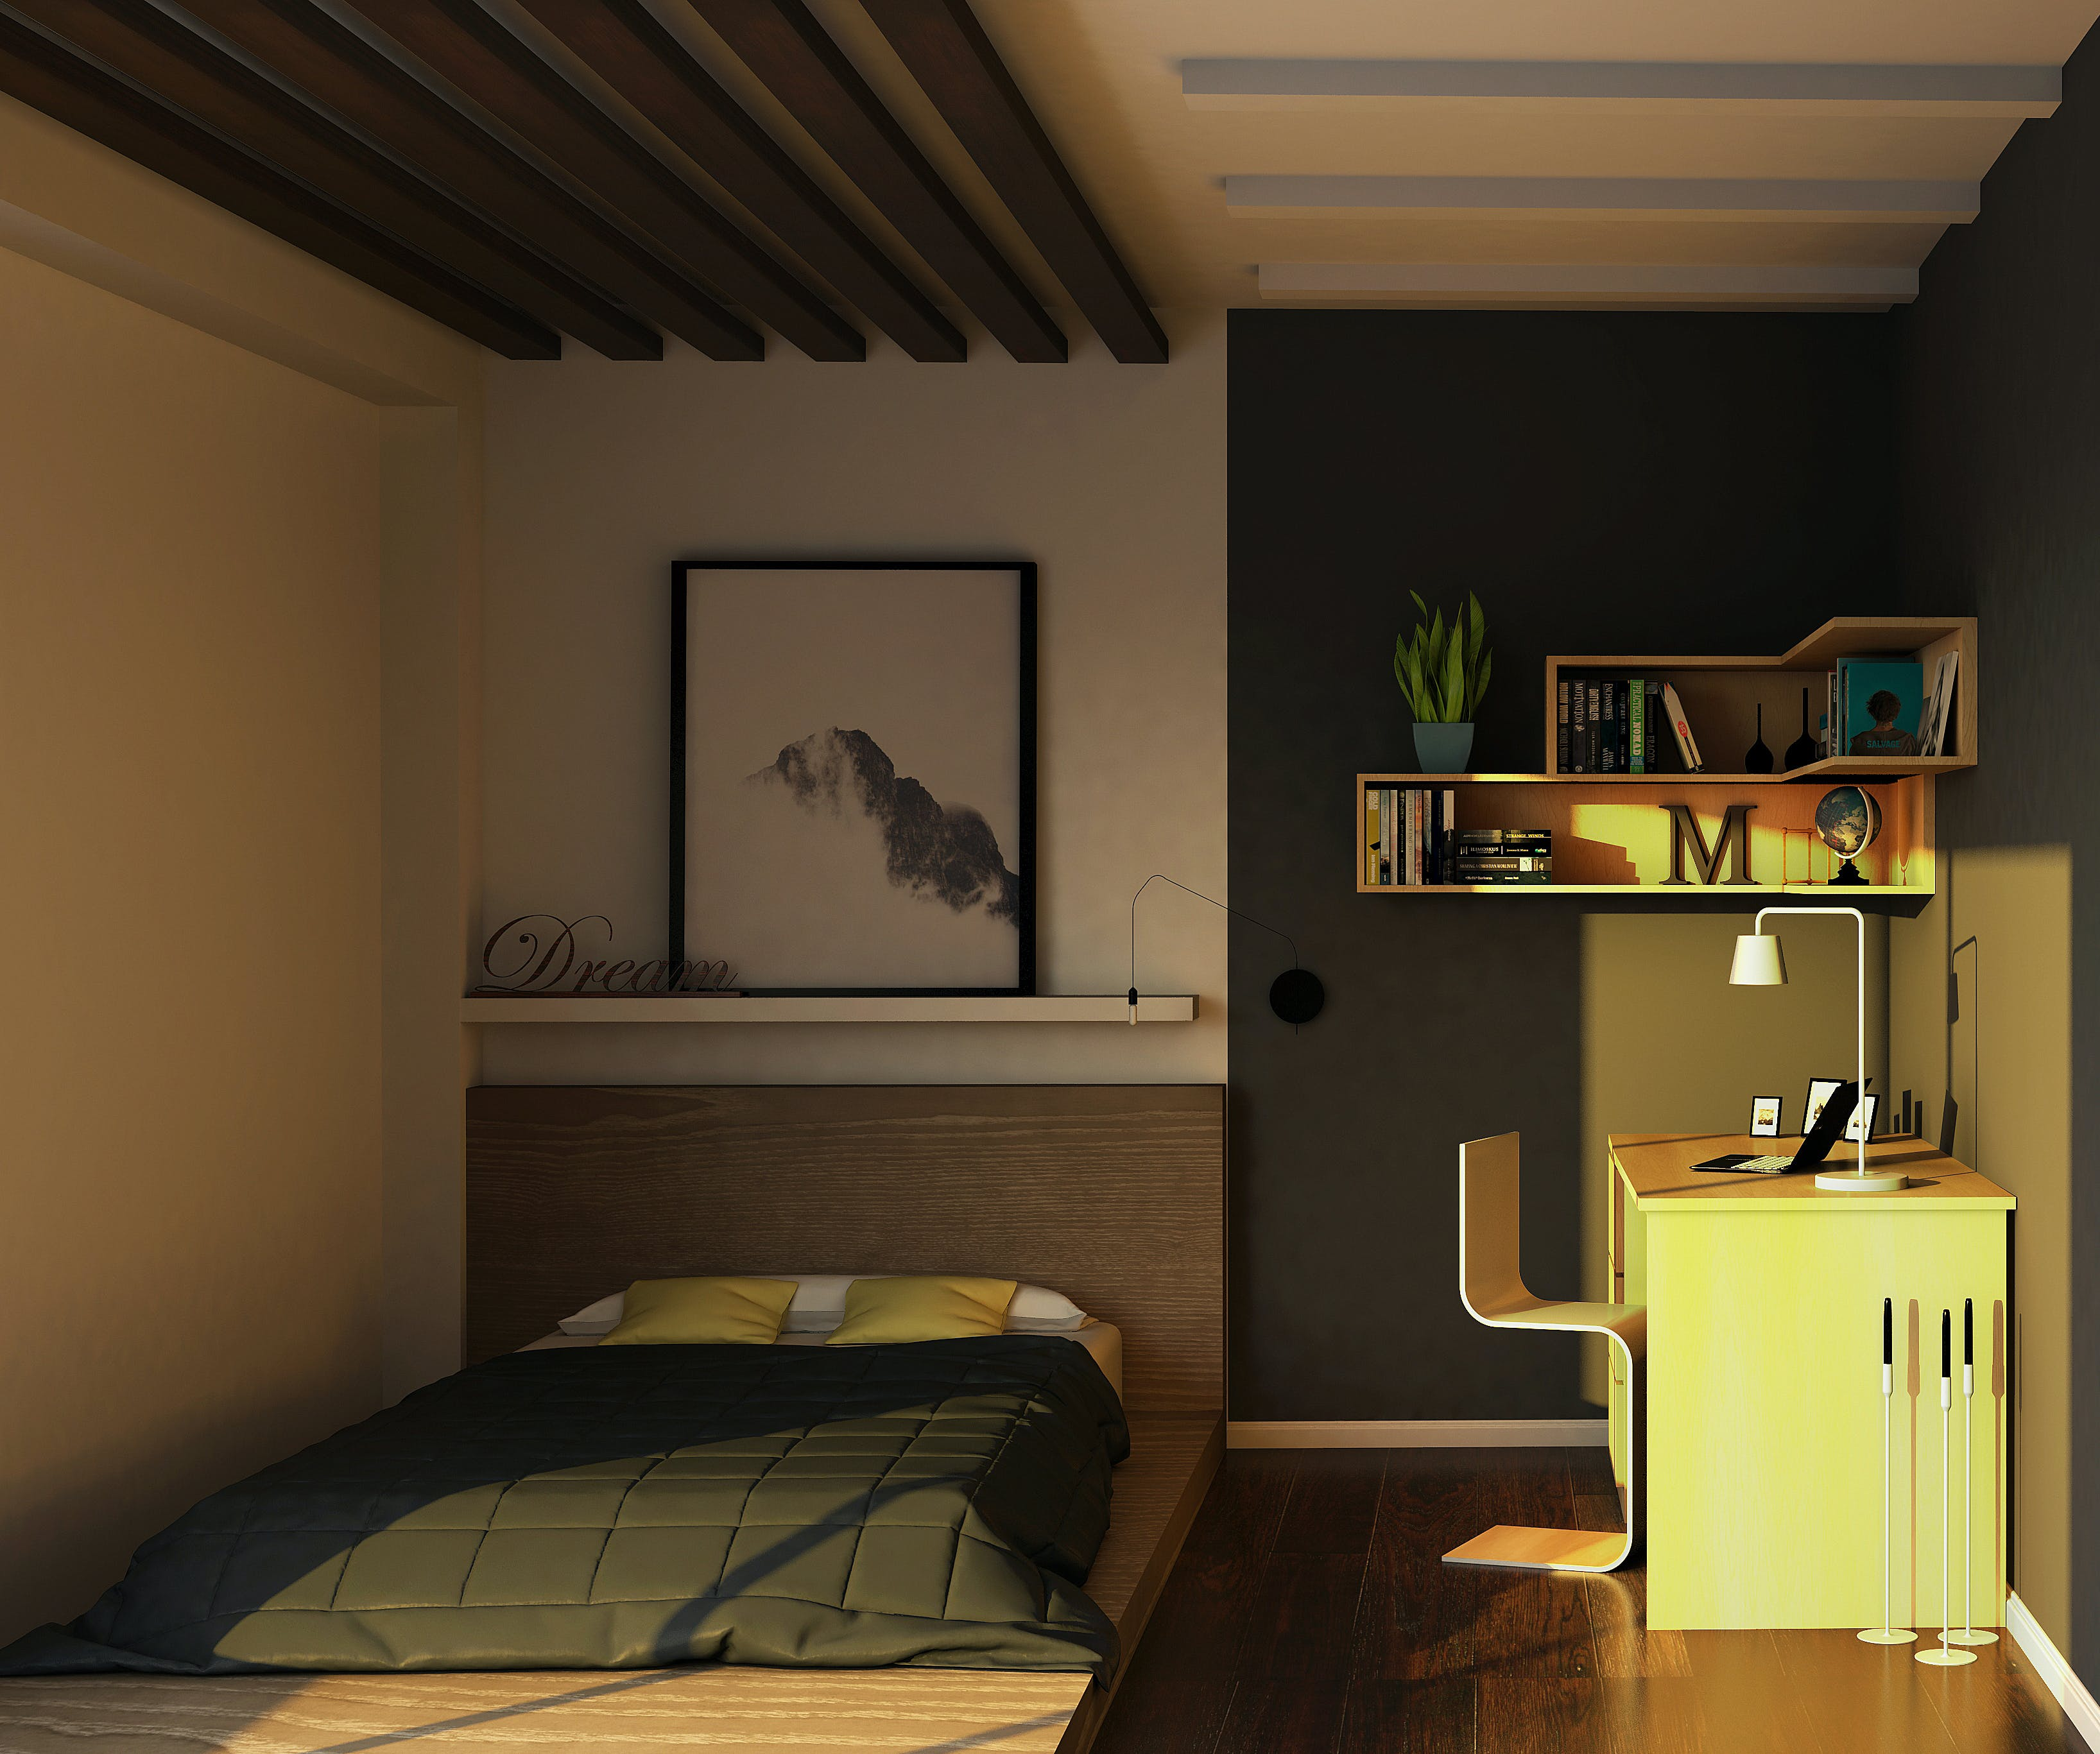 Free stock photo of 3D's Max, architectural design, bed, bedroom